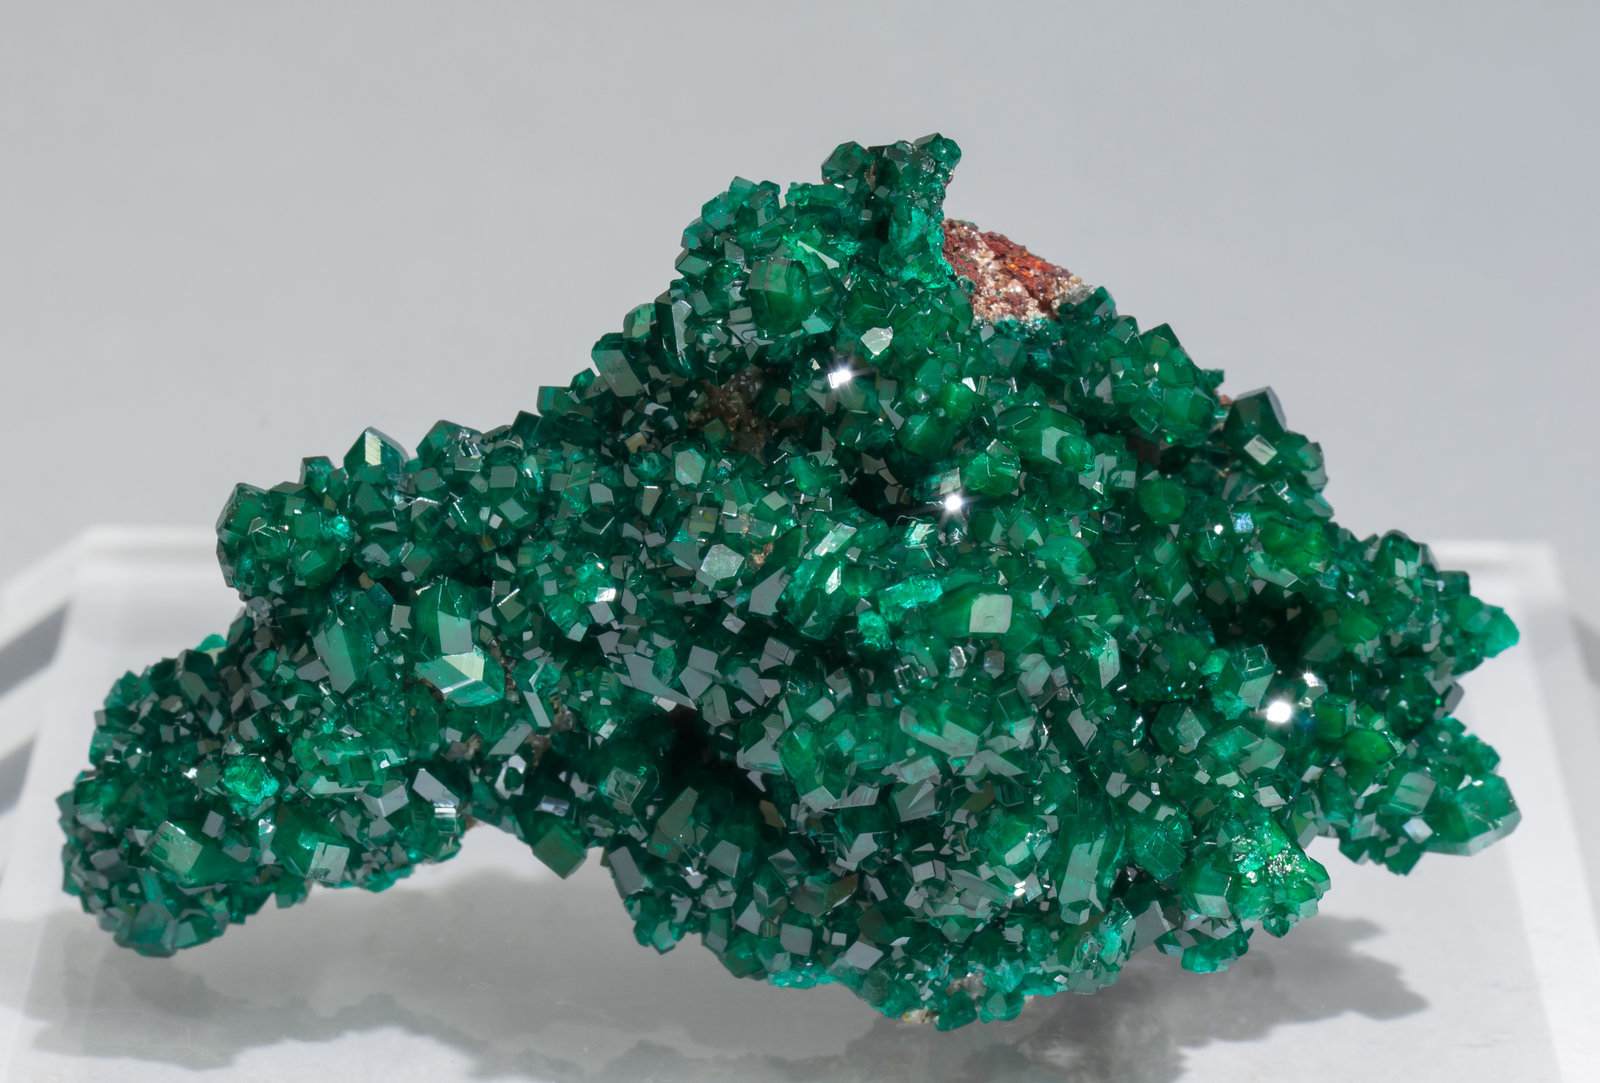 specimens/s_imagesAC2/Dioptase-TH68AC2f.jpg